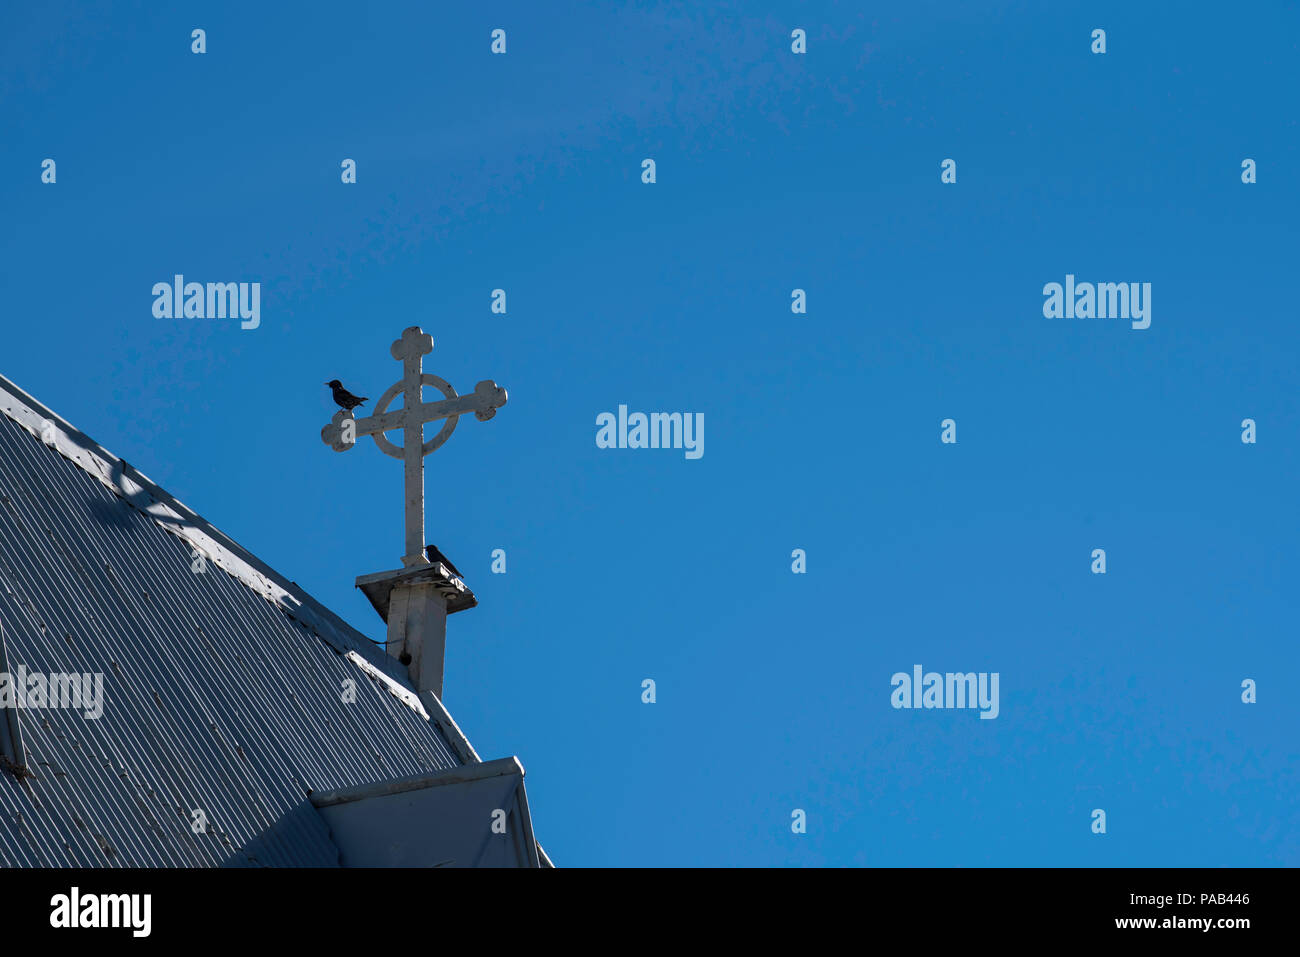 A Christian cross on a gable end of a tin roofed church in Bowral Australia with two Common Blackbirds (Turdus merula) resting on the cross - Stock Image